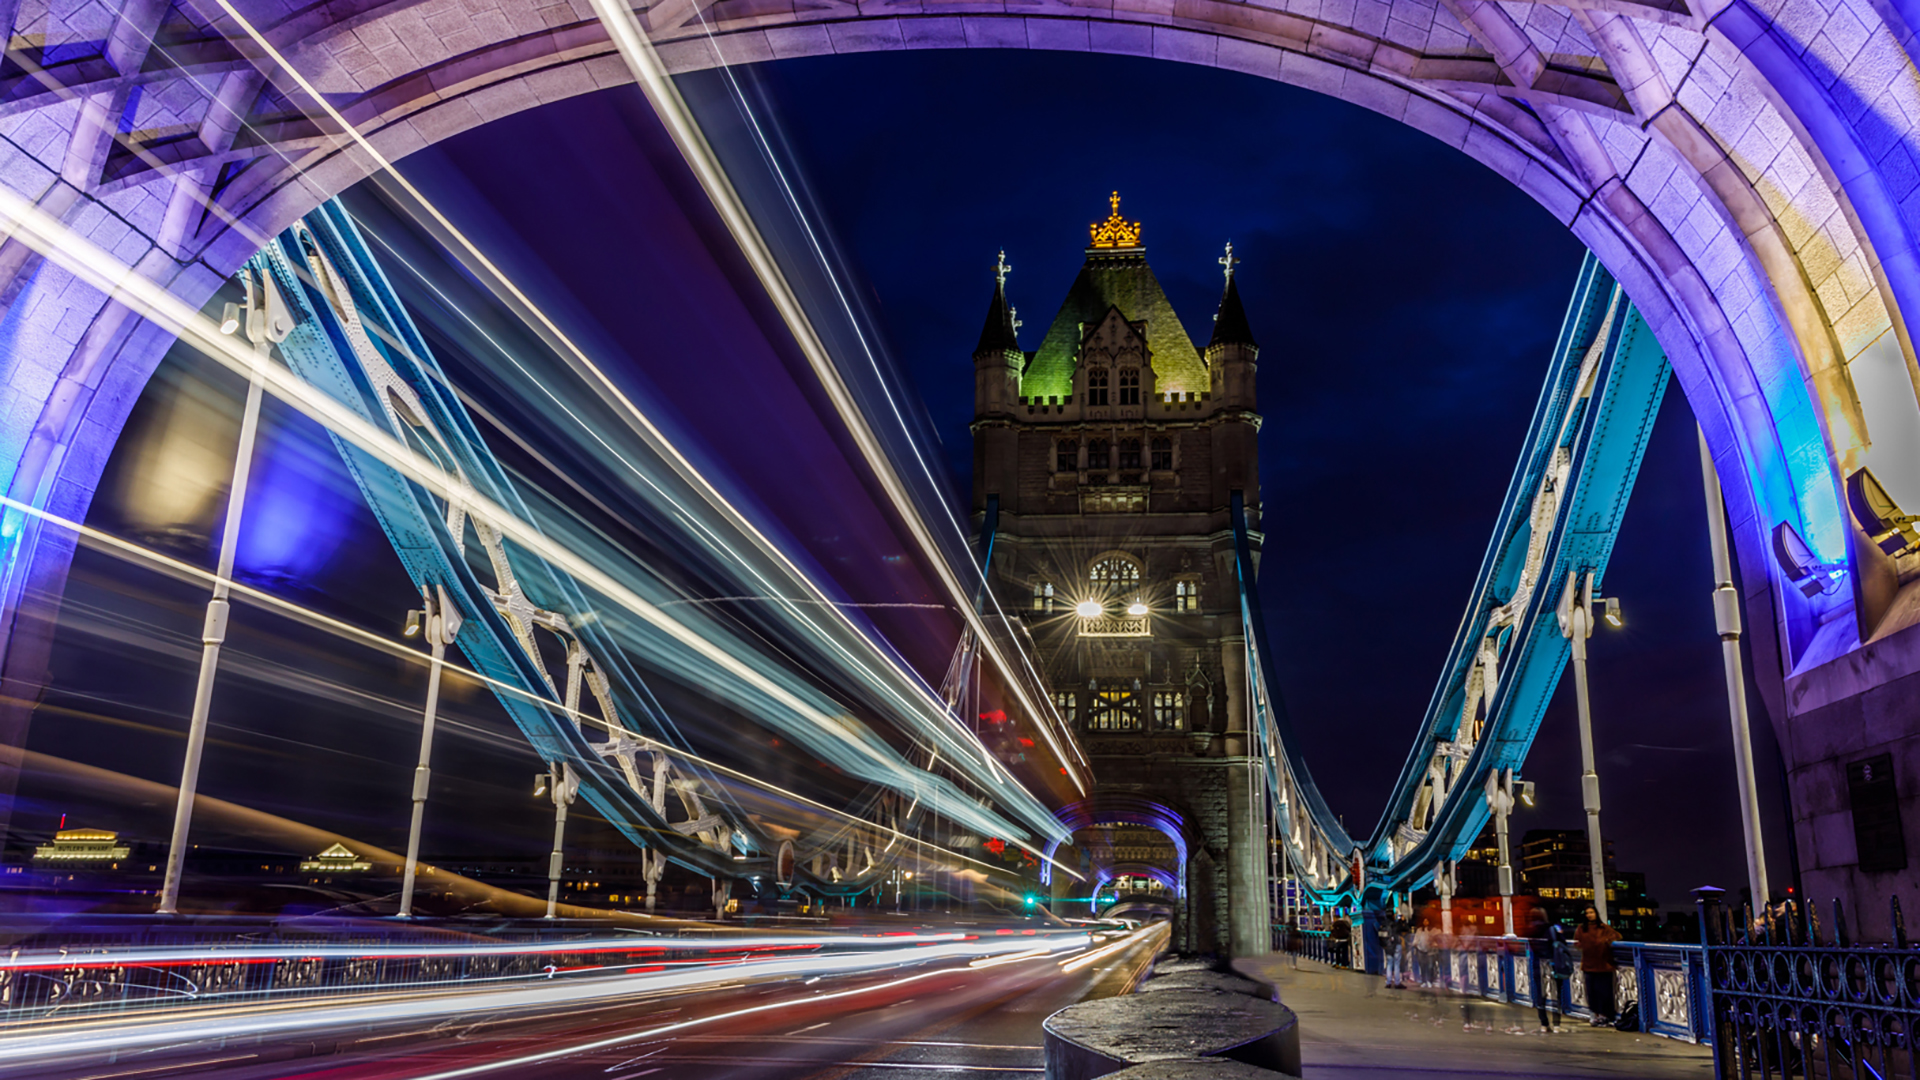 Nightime On Tower Bridge by Steve Bexon